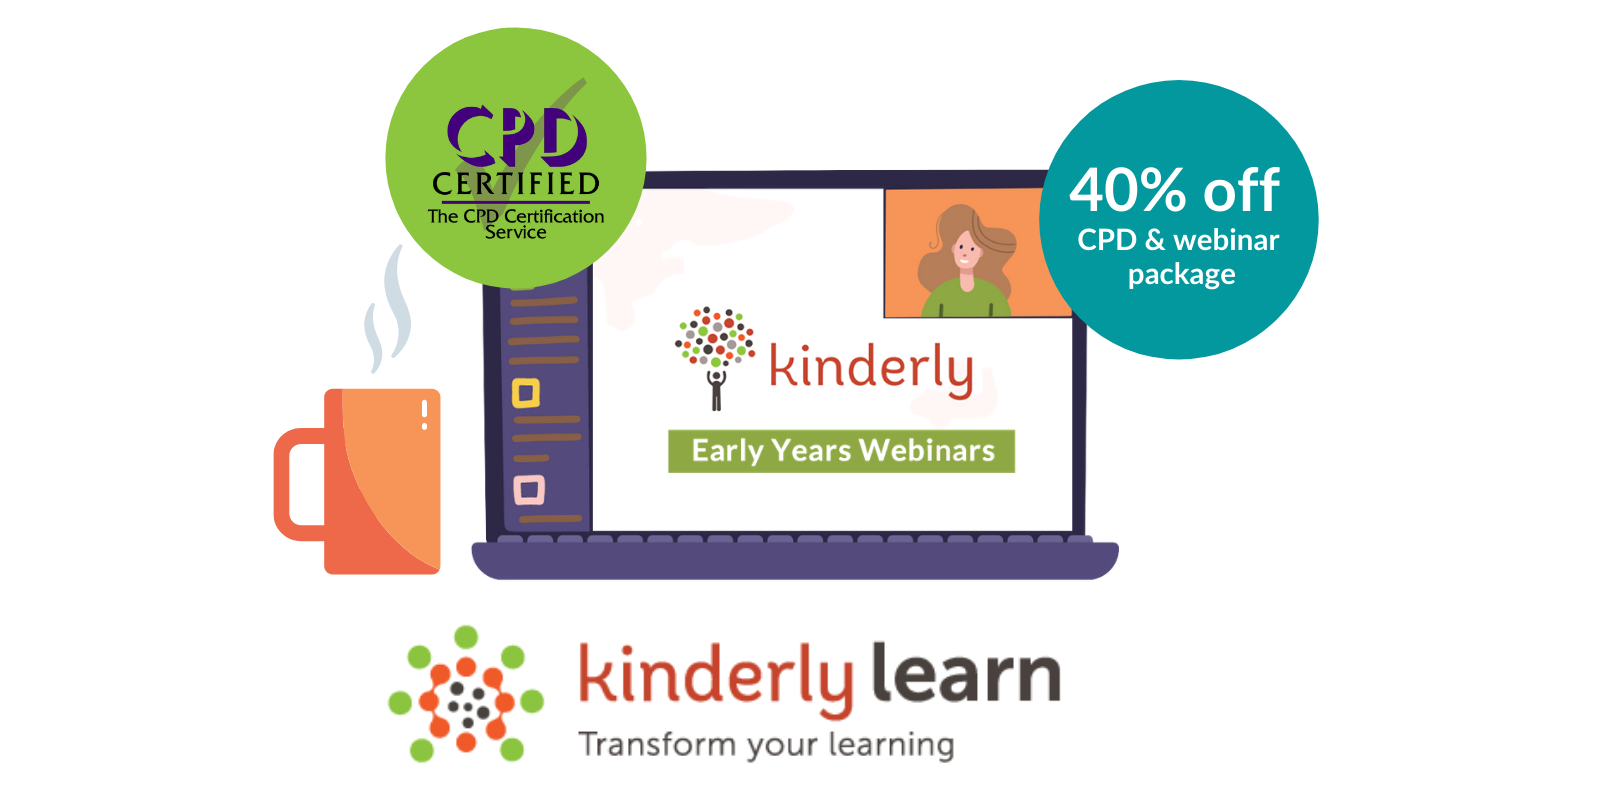 kinderly learn banner